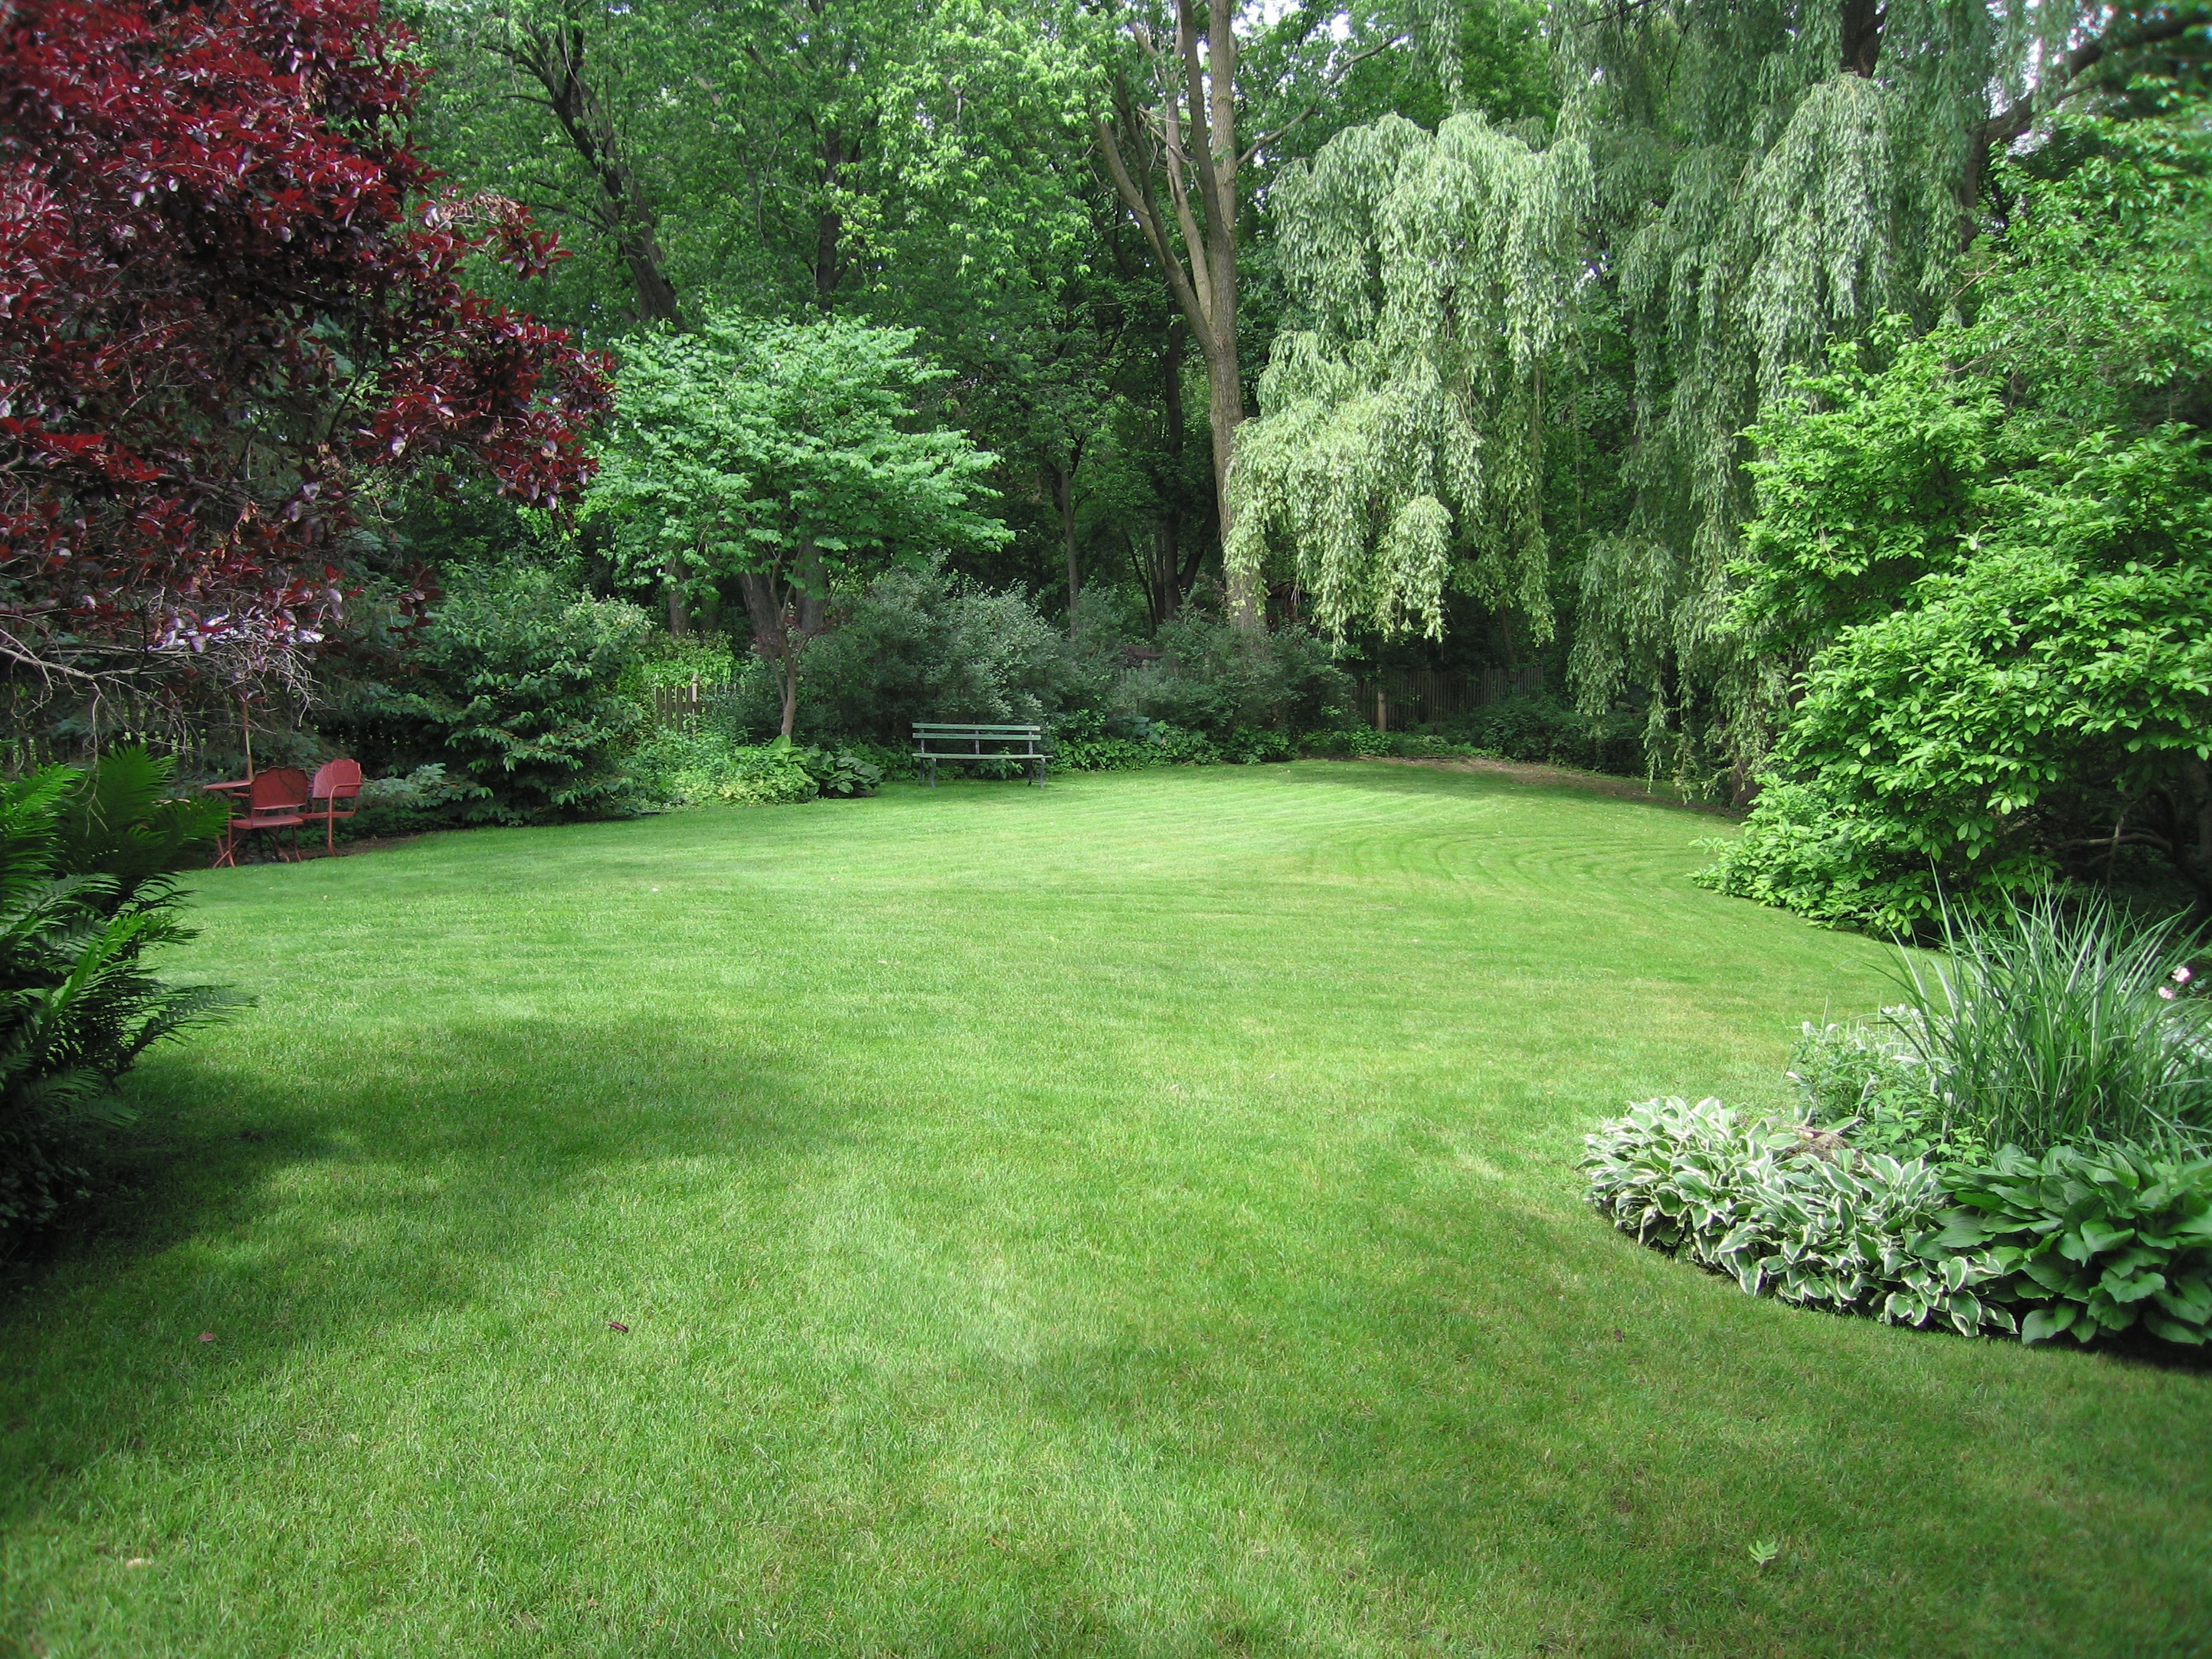 10 Pacific Northwest Garden Ideas, Most of the Awesome and Gorgeous